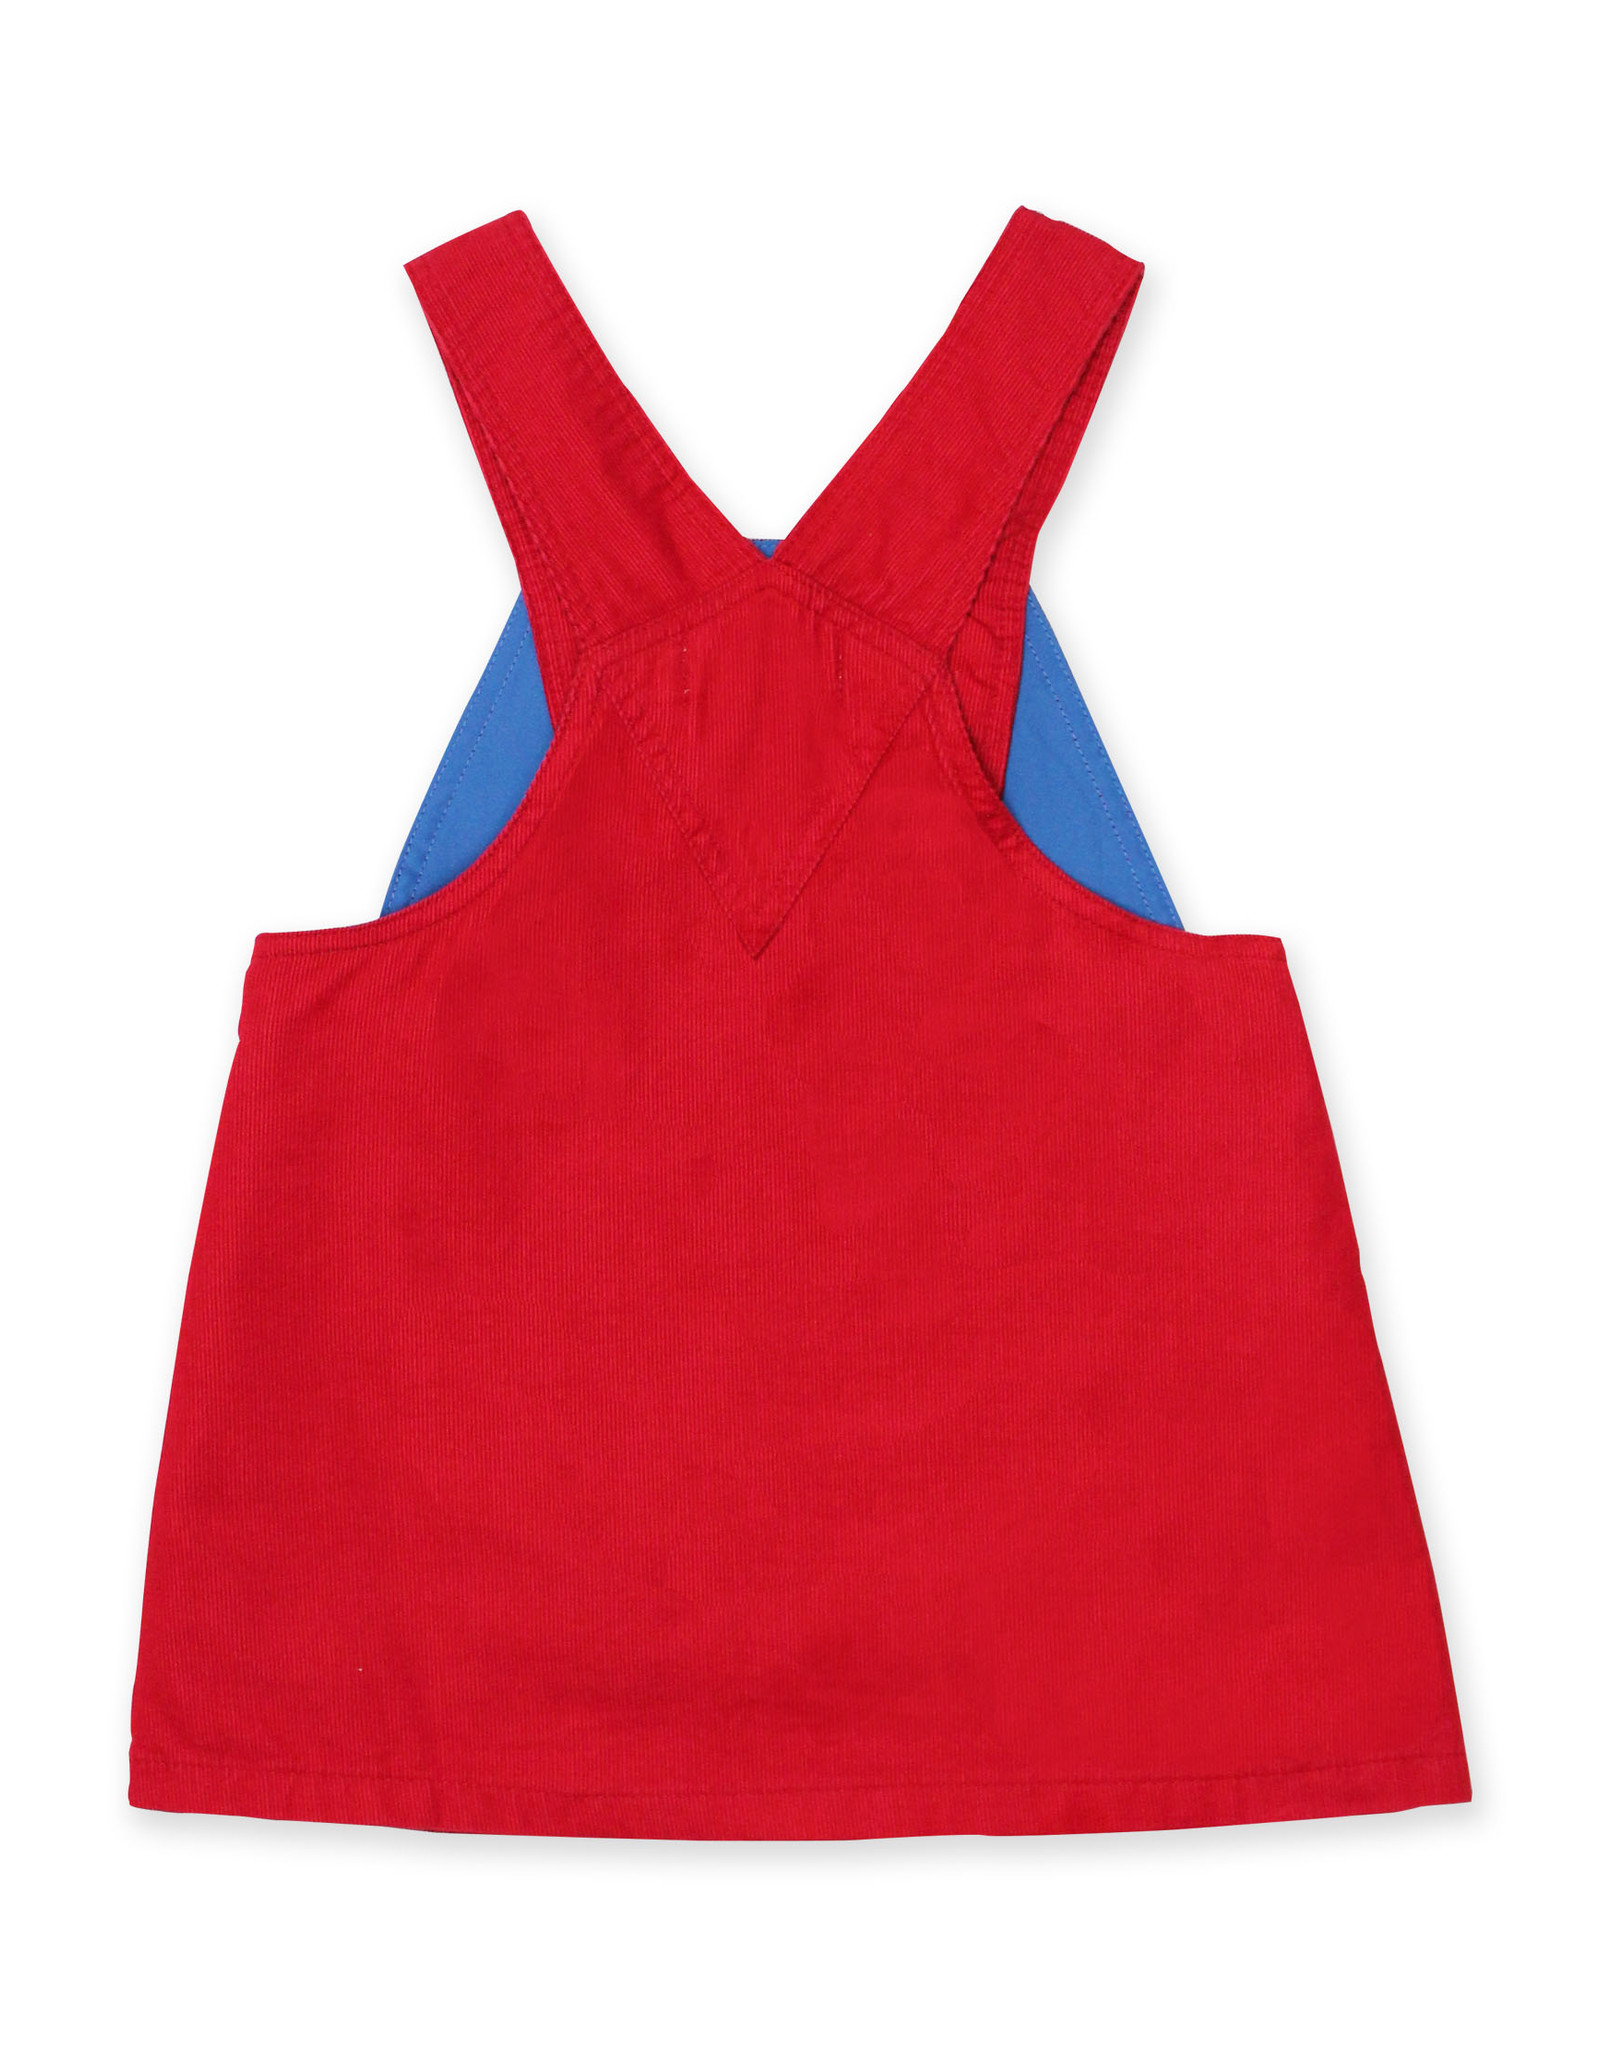 Toby Tiger Red Corduroy Dungaree Dress